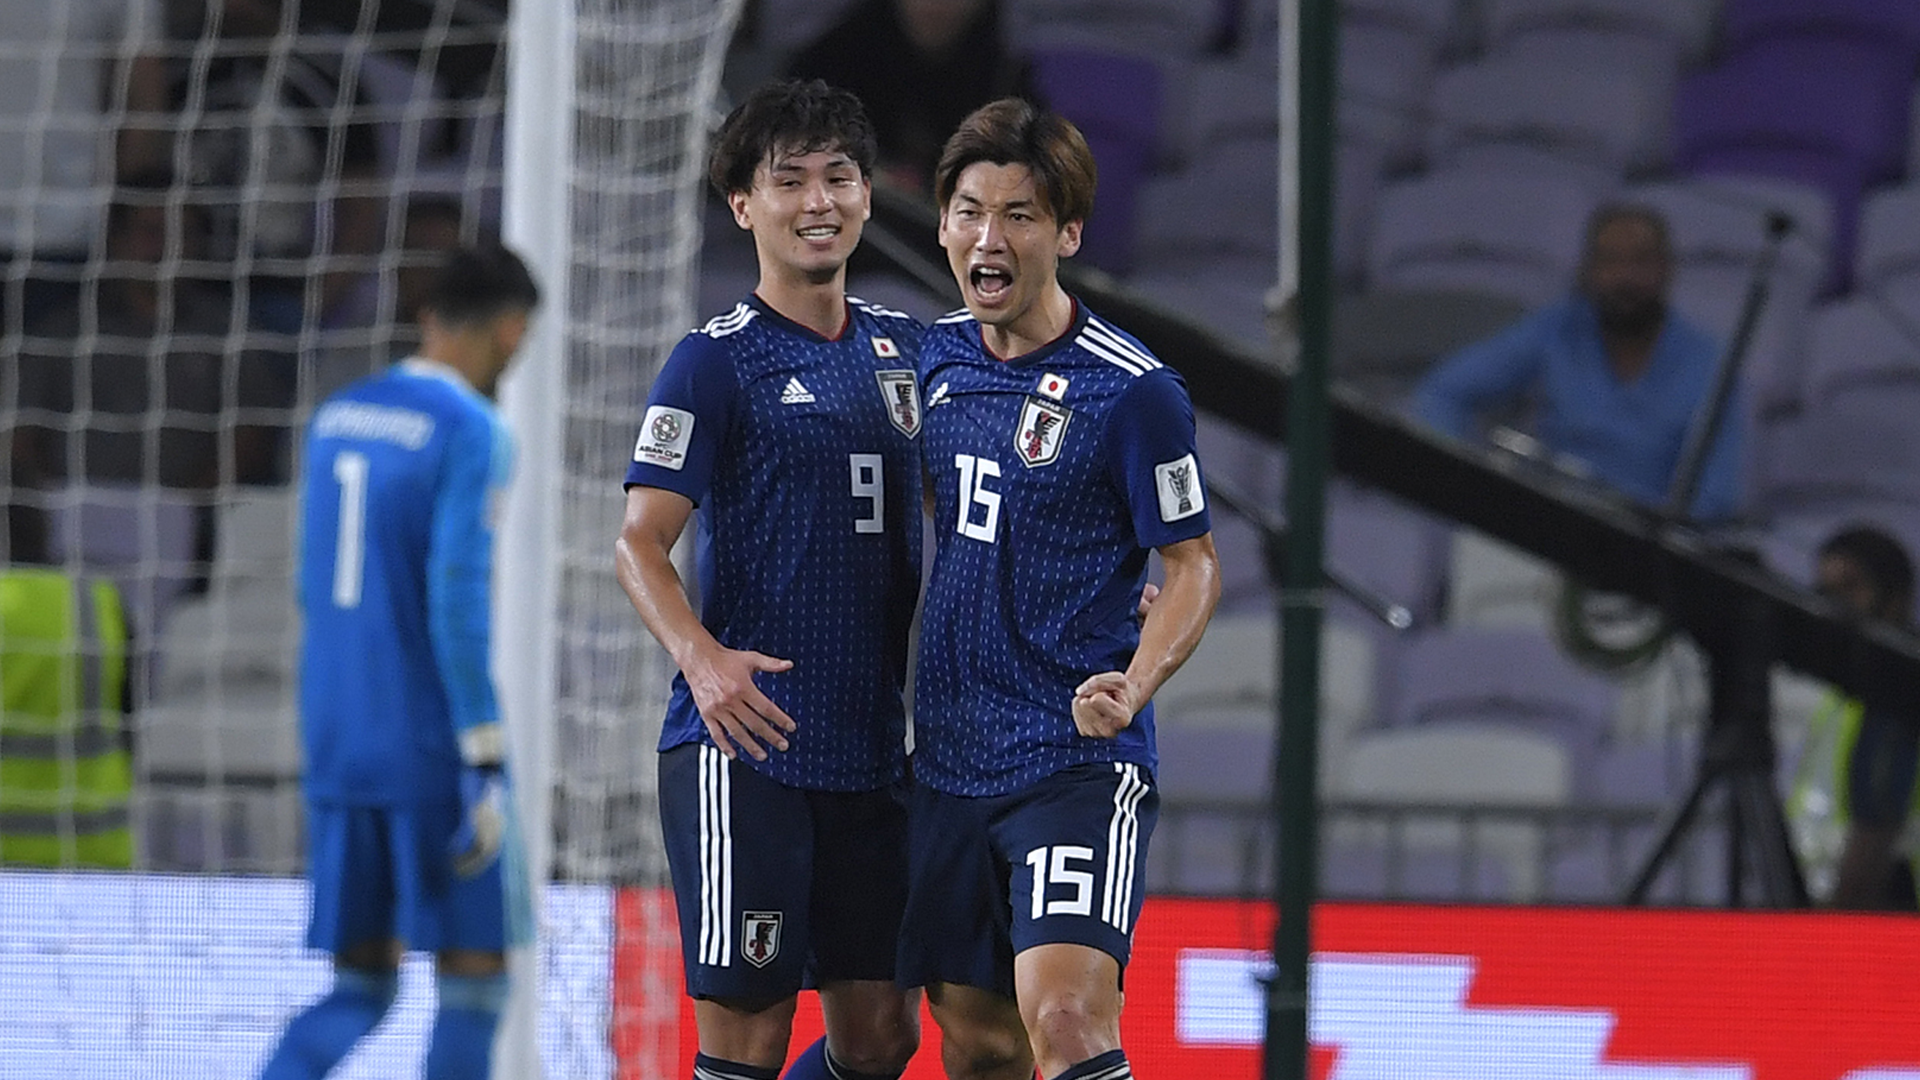 Uruguay vs Japan Betting Tips: Latest odds, team news, preview and predictions